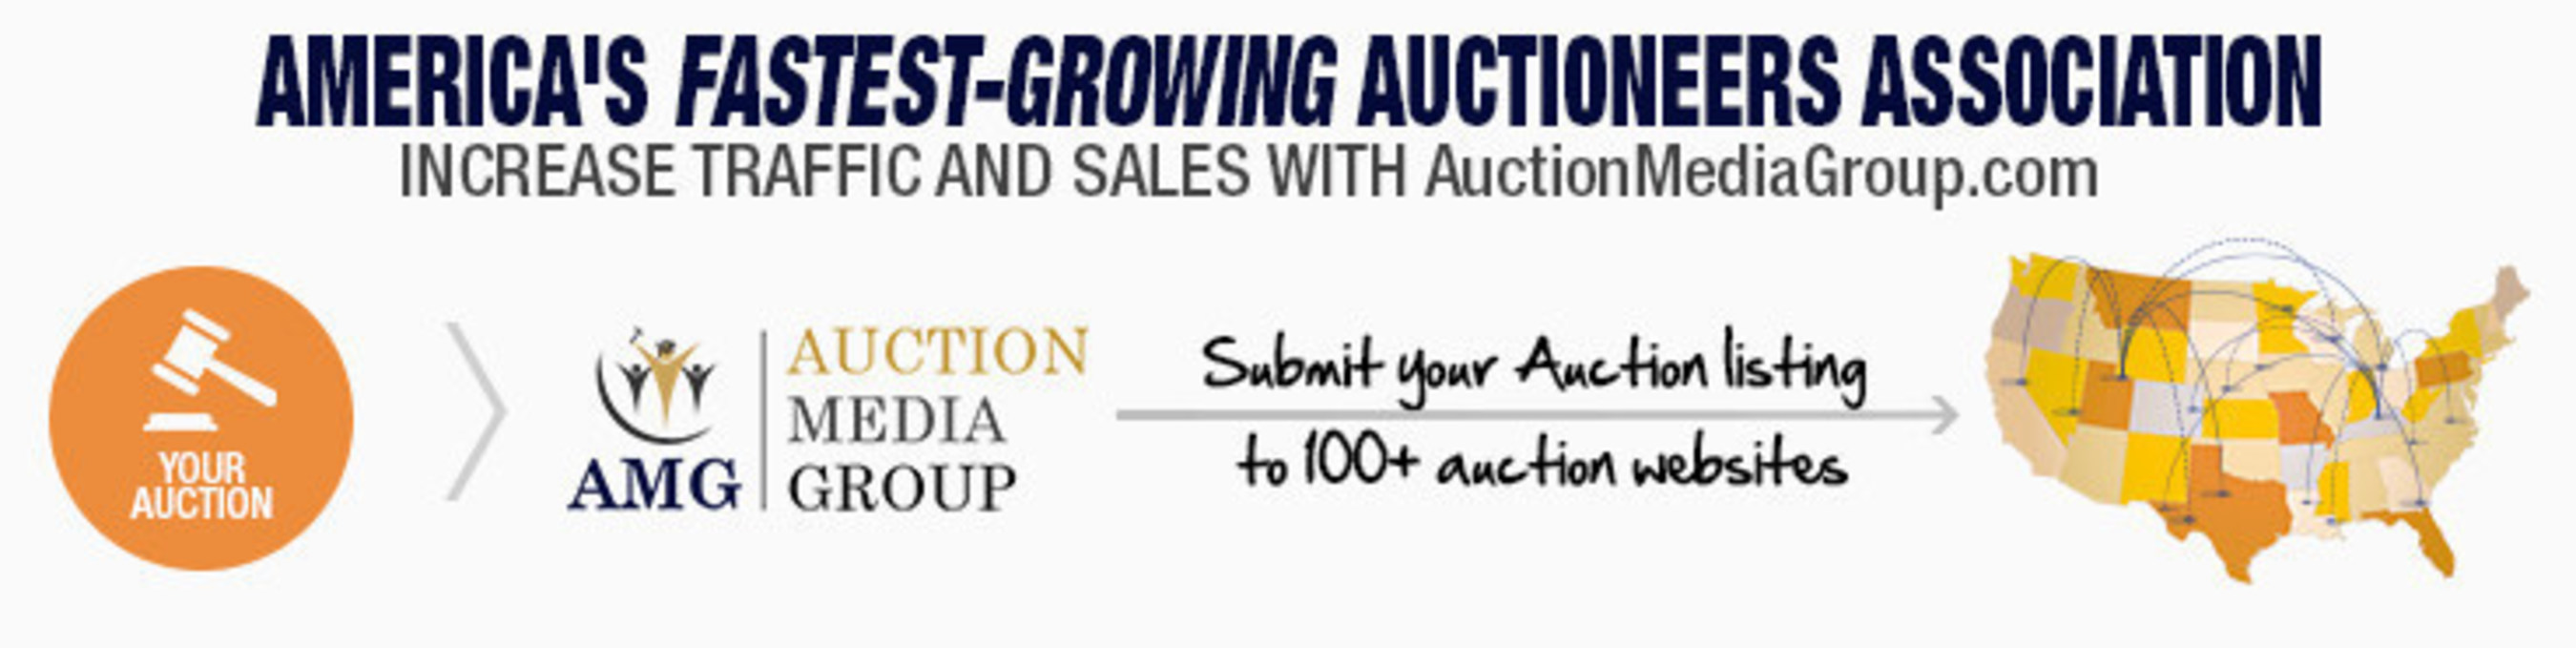 New Auctioneers Association Changing The Online Auction Landscape In 2016